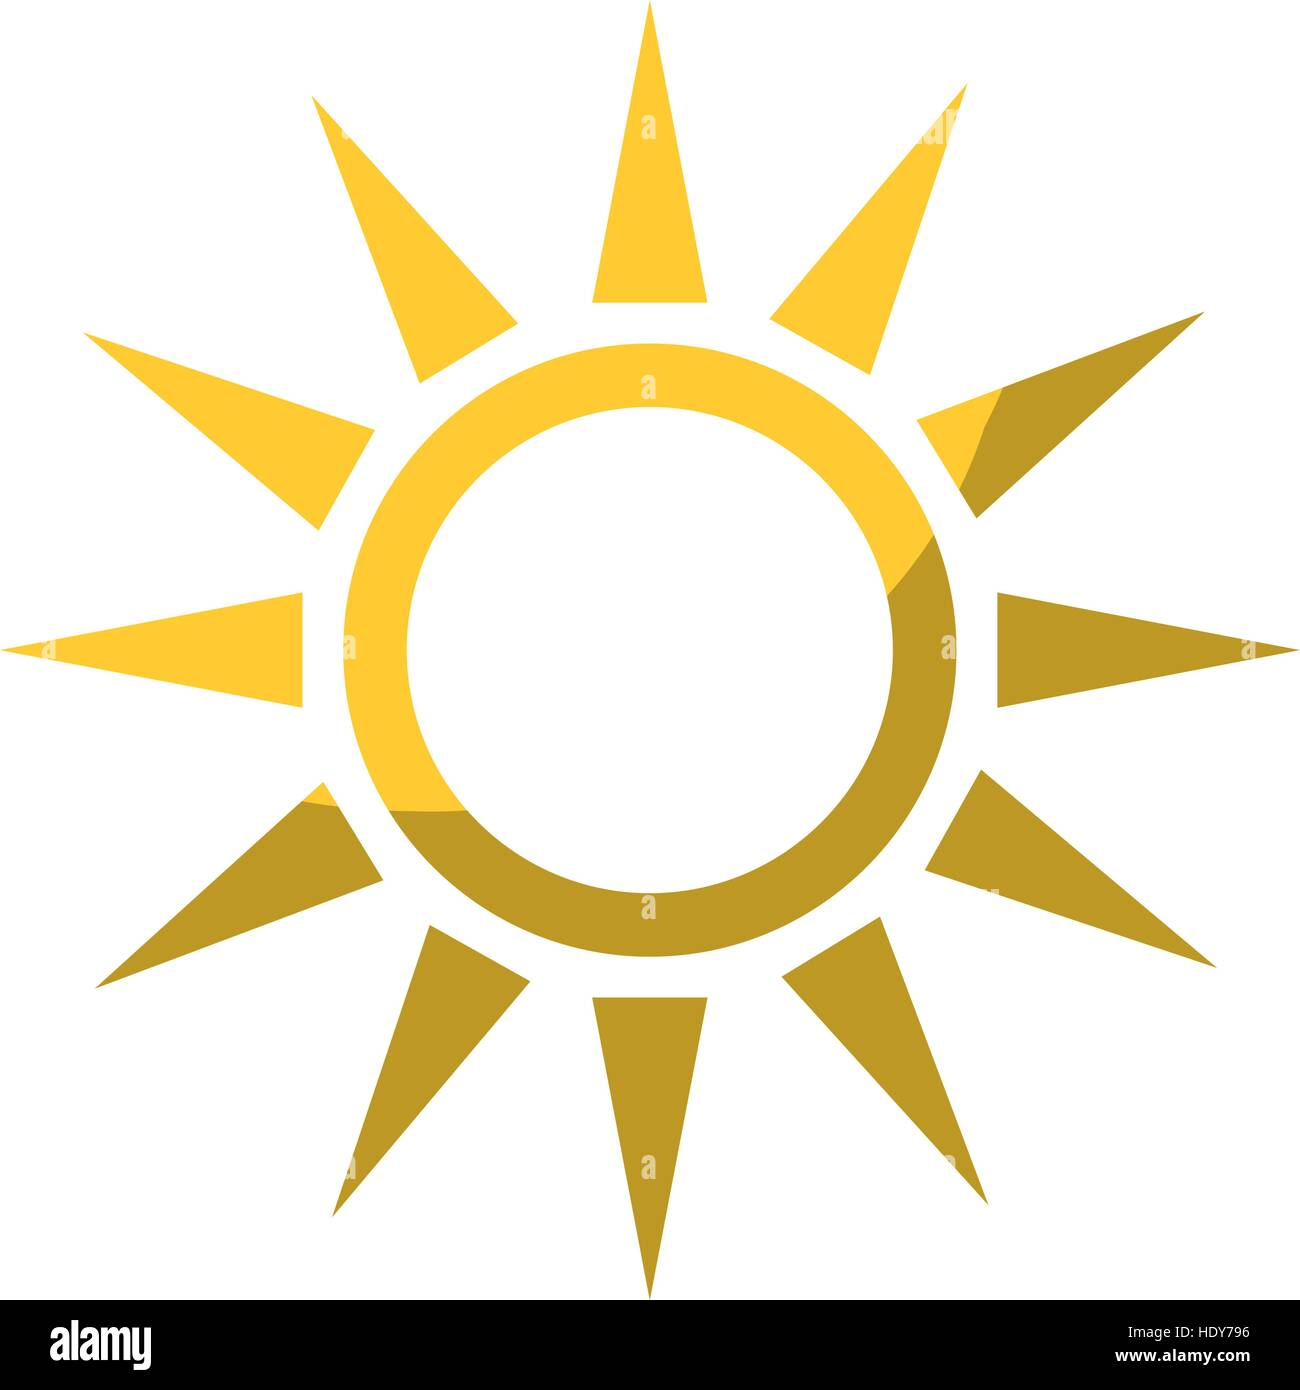 sun shape icon - Stock Image